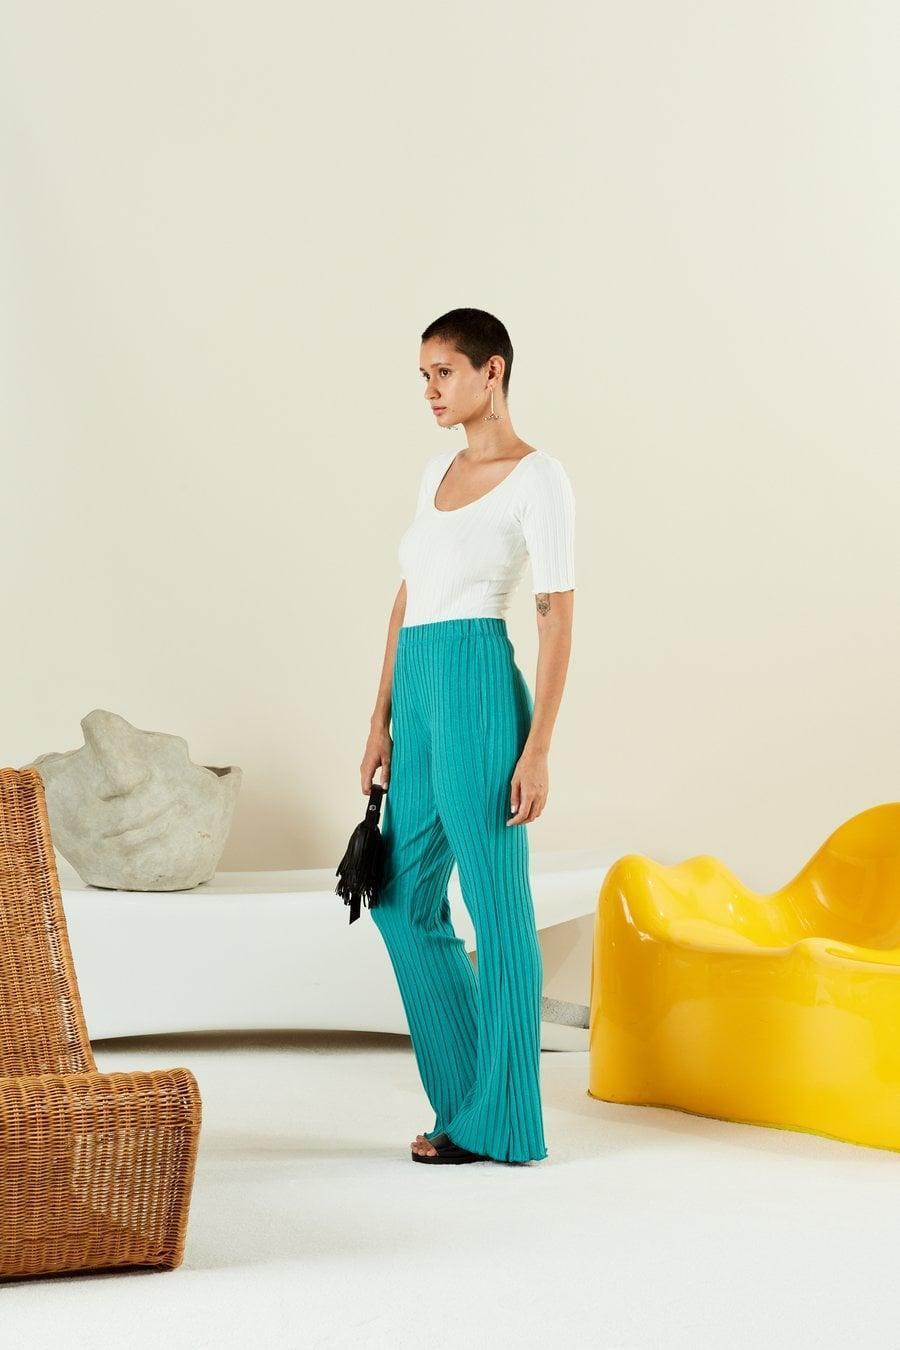 <p>If you choose to forgo the matching top, we'd recommend pairing <span>Simon Miller's Rib Cyrene Pant</span> ($170) with a tight-fitting bodysuit.</p>